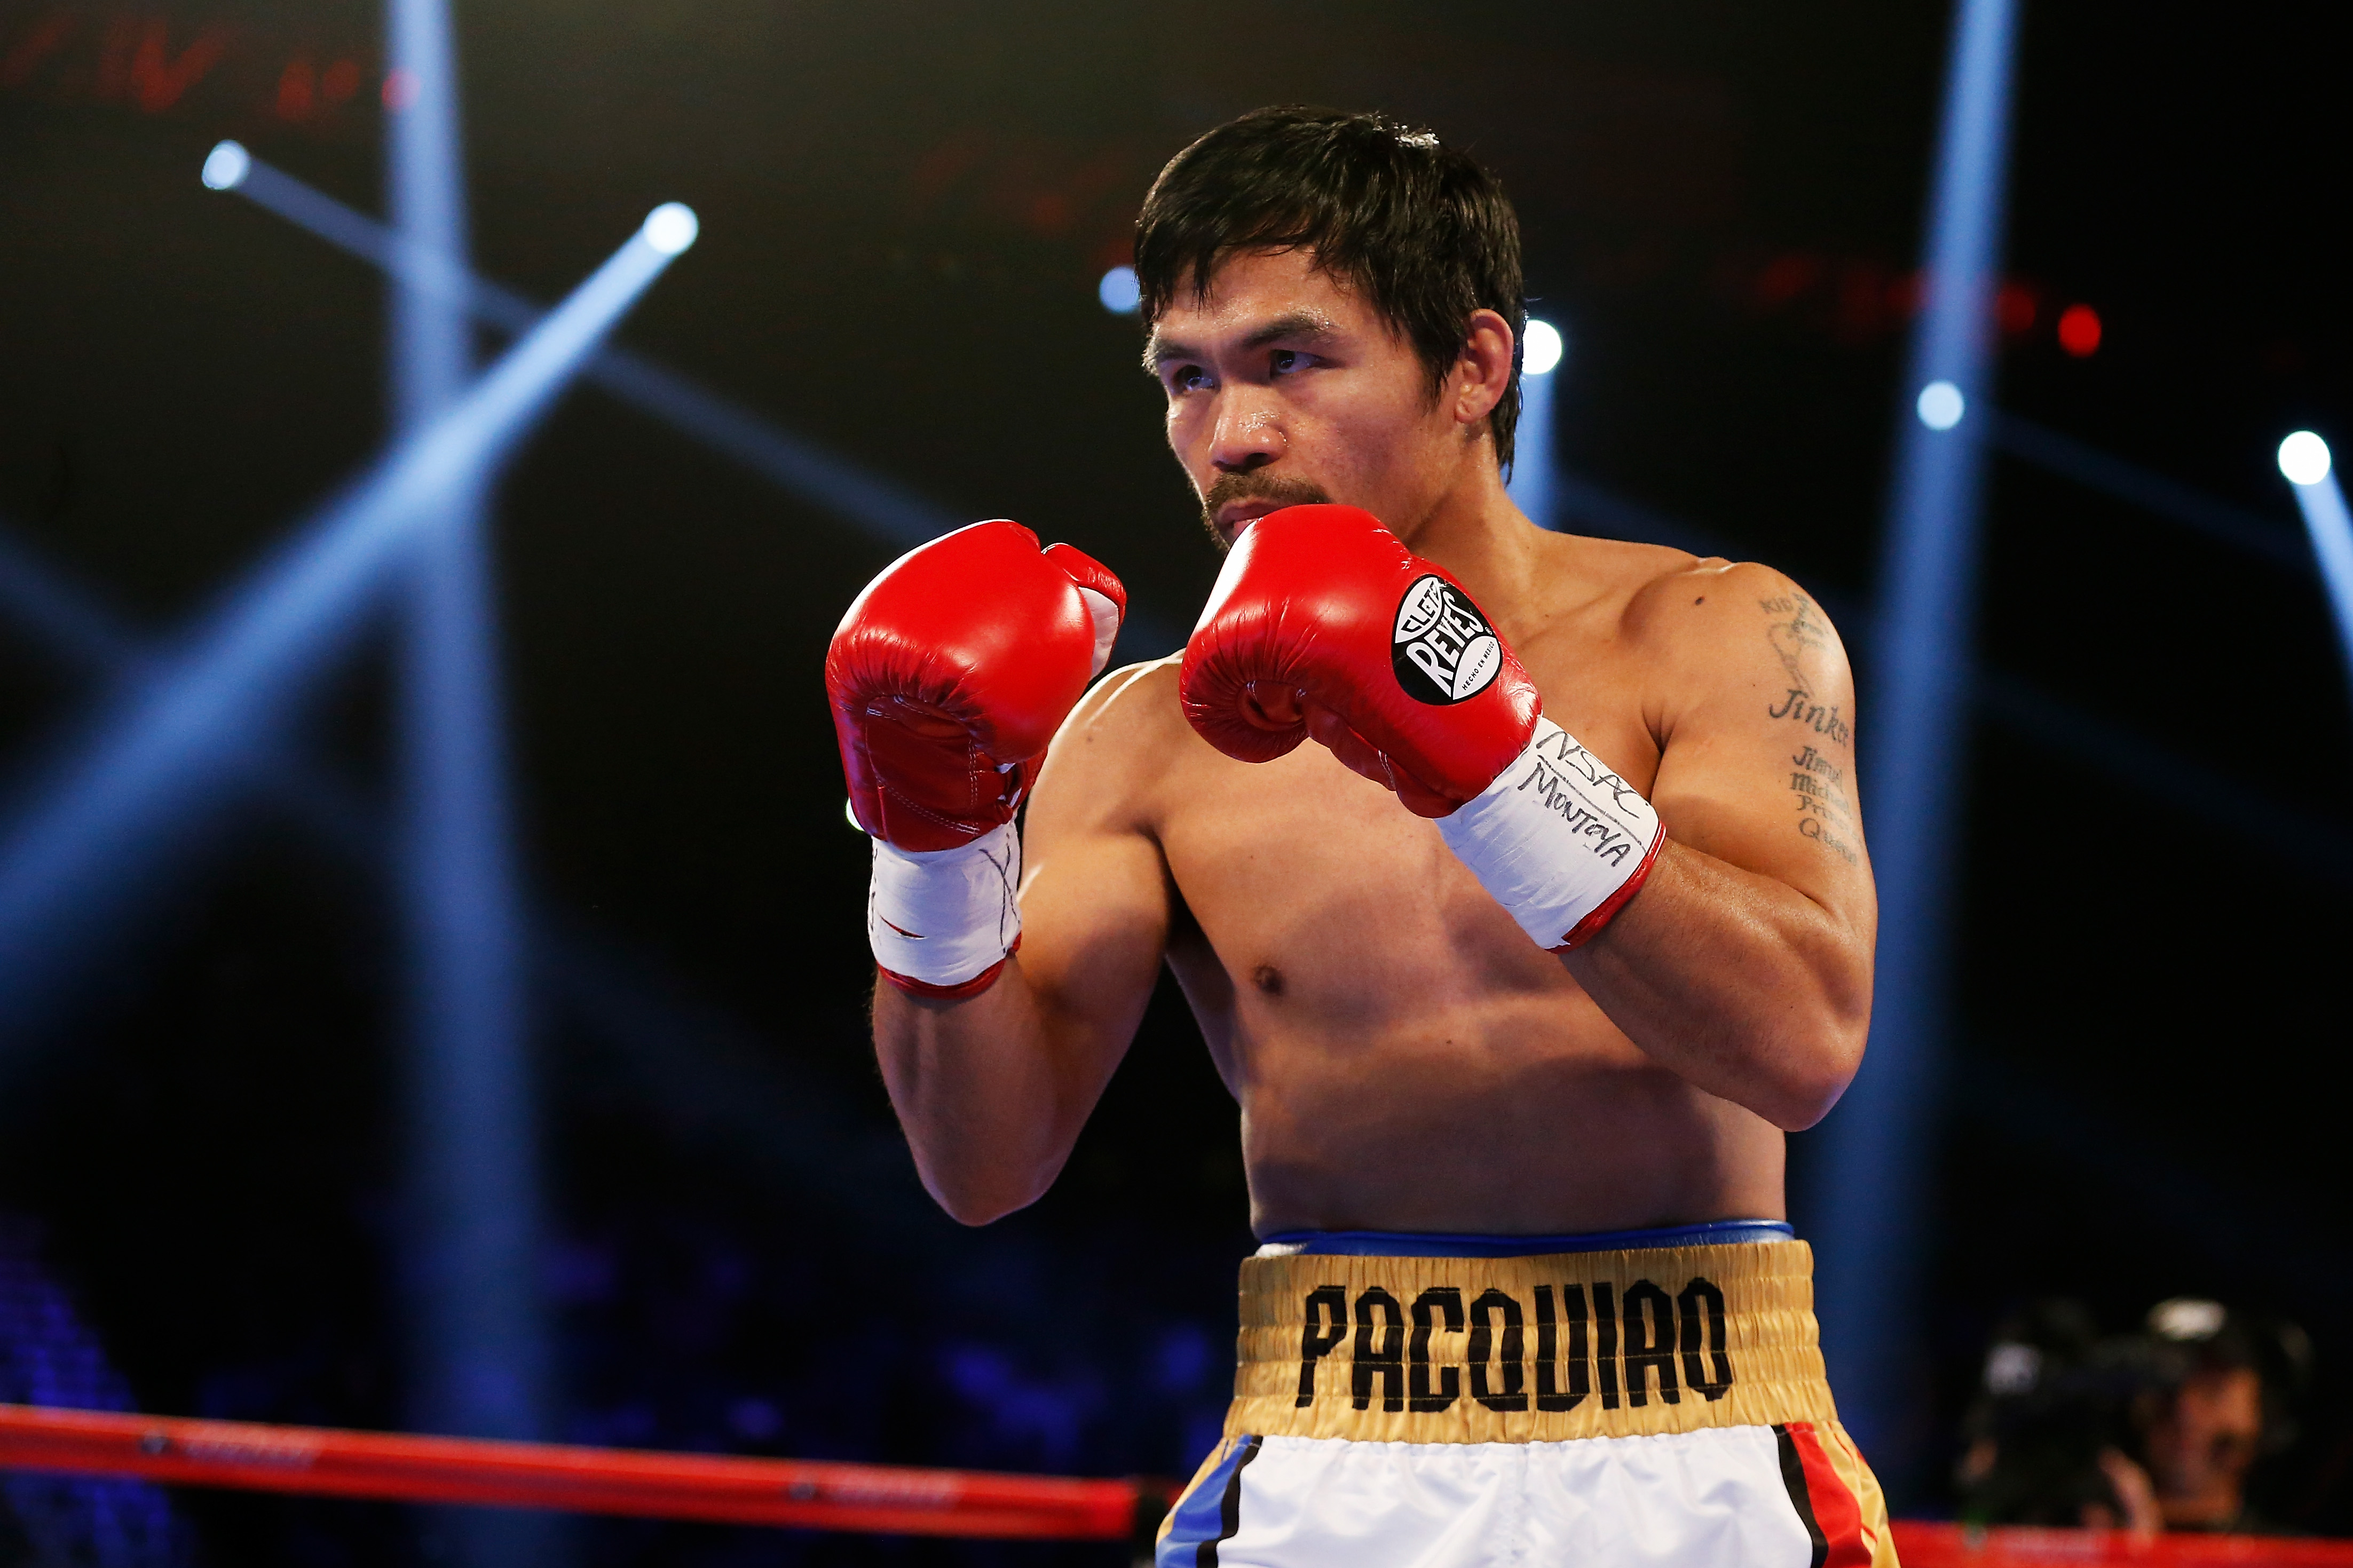 Boxing Ring Wallpaper Hd Pacquiao Vs Vargas 5 Keys To Victory For Manny Pacquiao